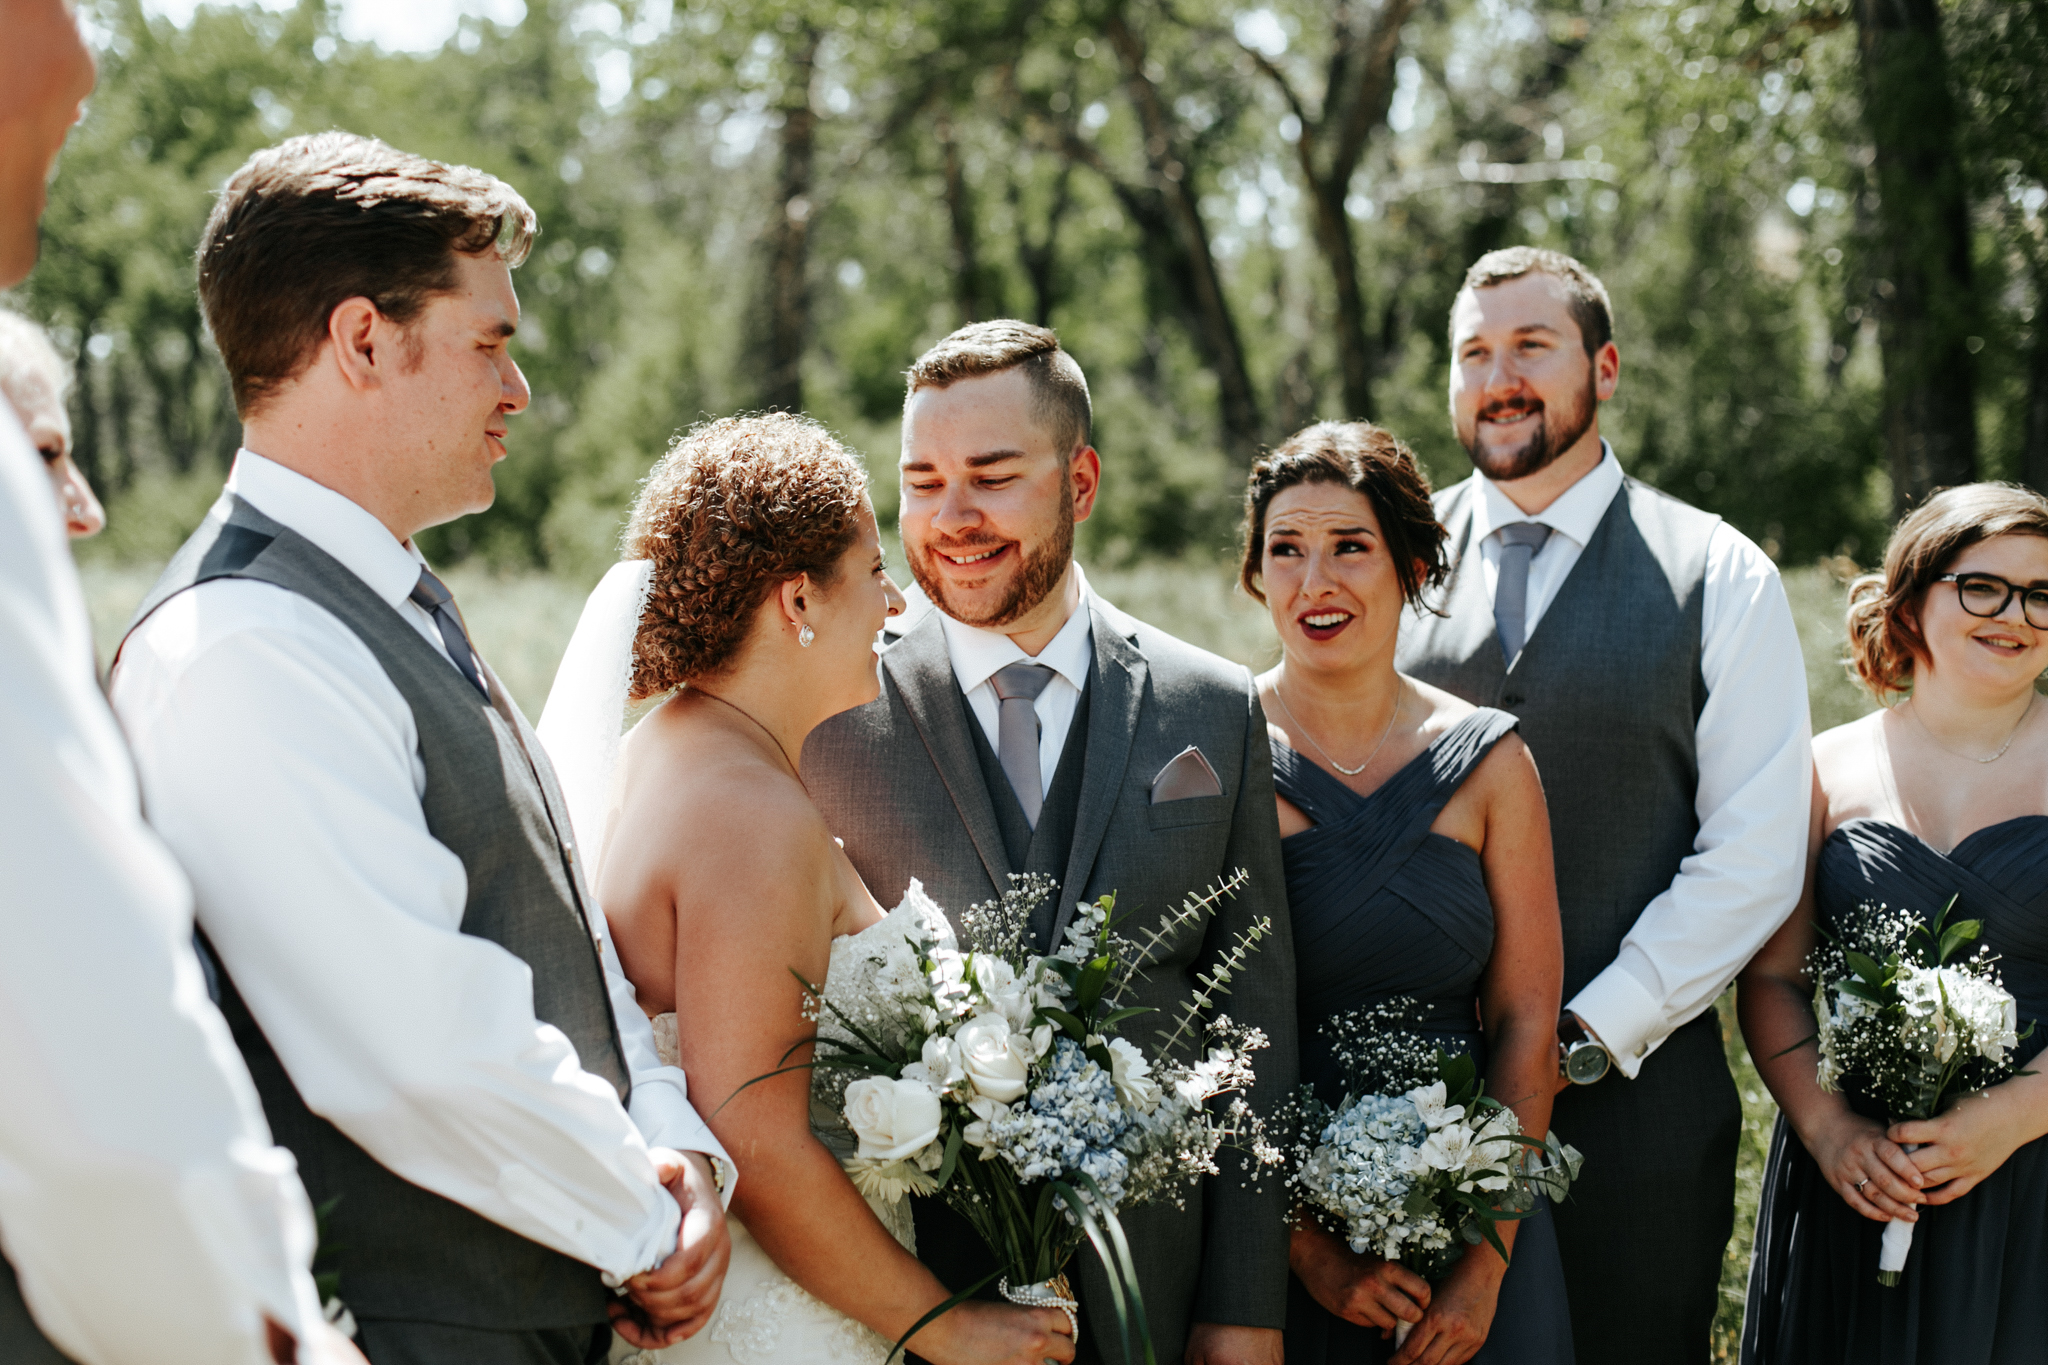 lethbridge-wedding-photographer-love-and-be-loved-photography-trent-danielle-galt-reception-picture-image-photo-101.jpg